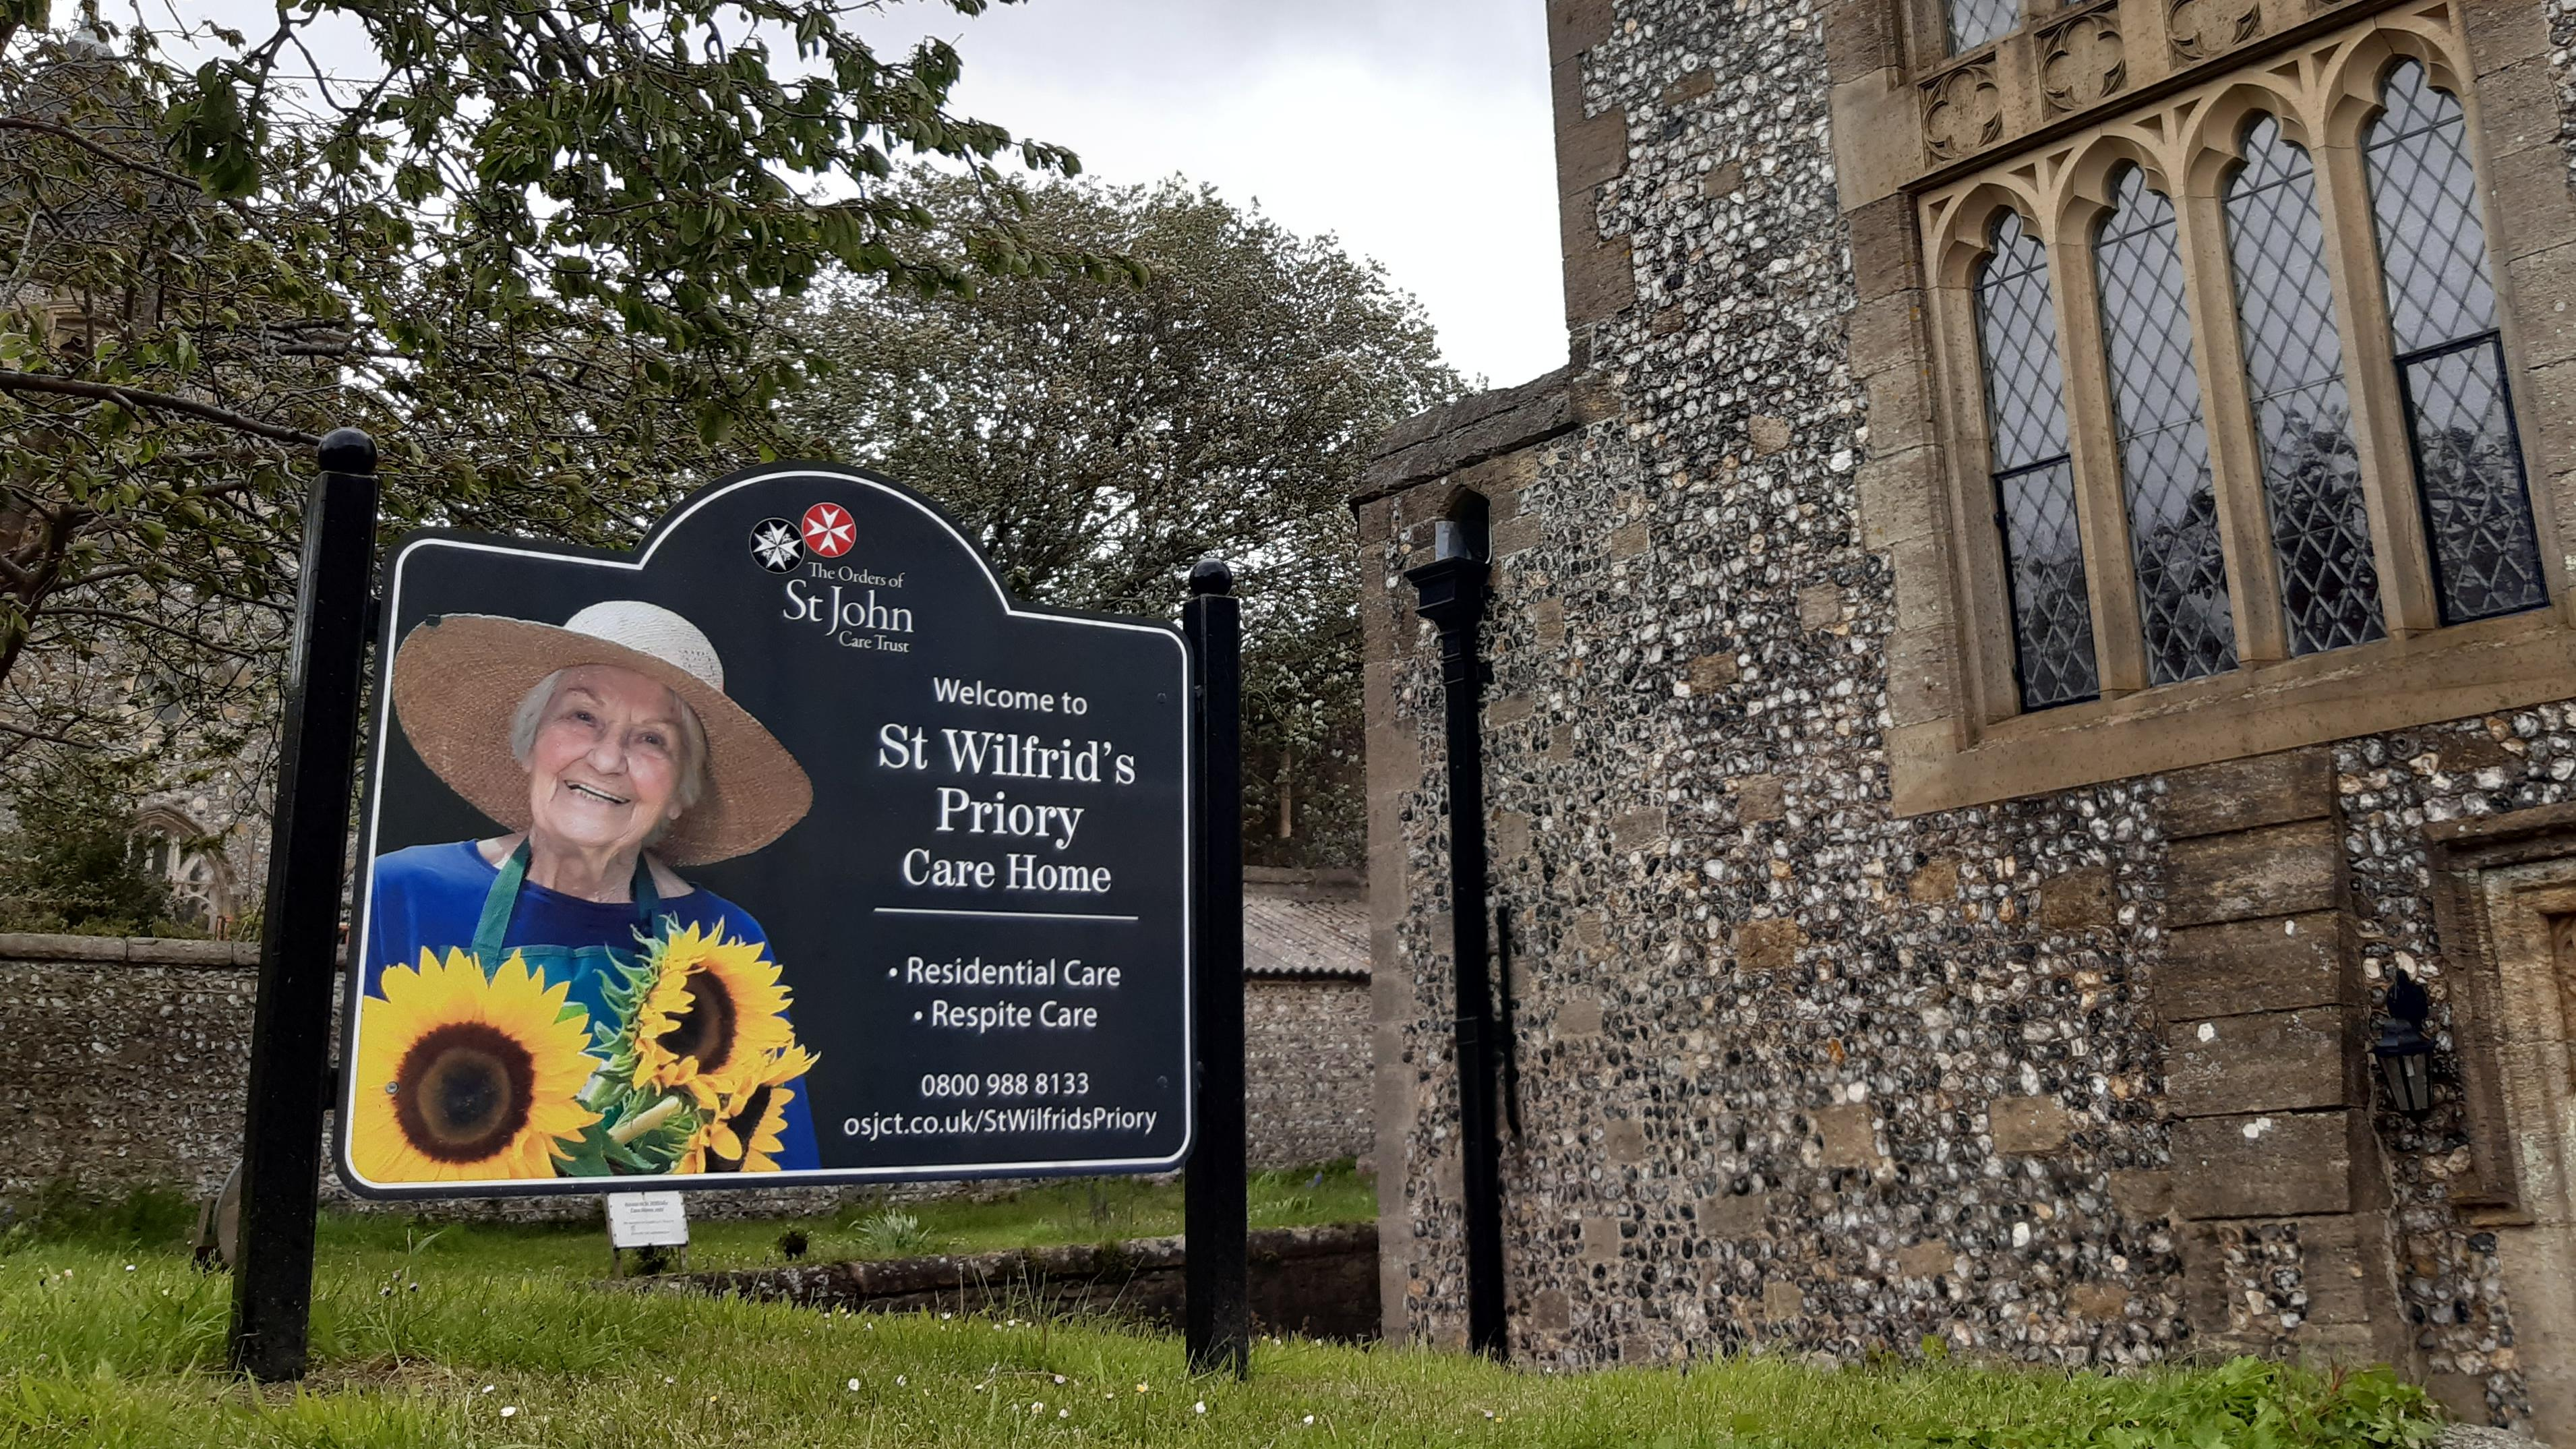 St Wilfrid's Priory main entrance and signage